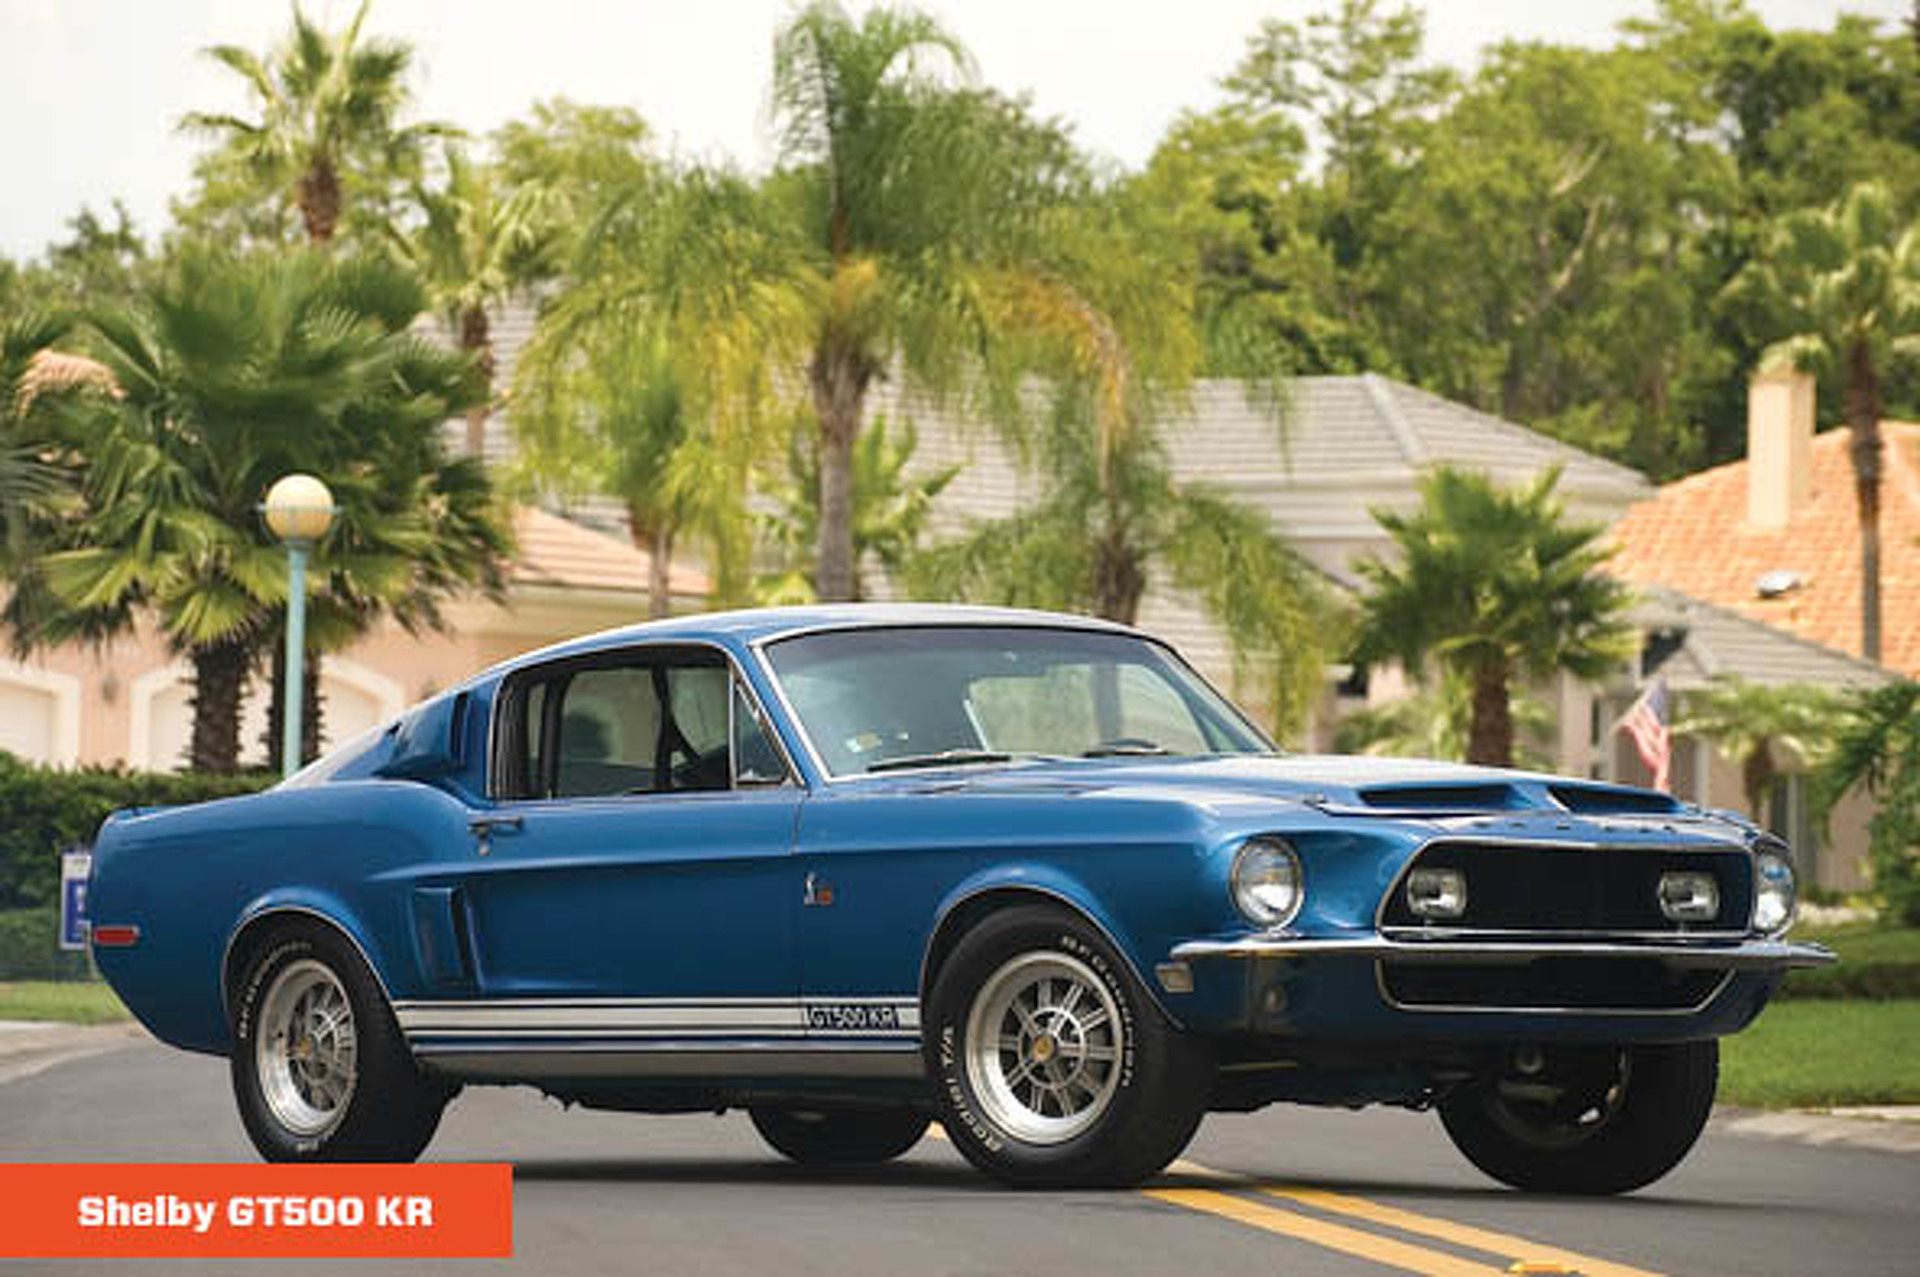 List: The Top Shelby Cars of all Time